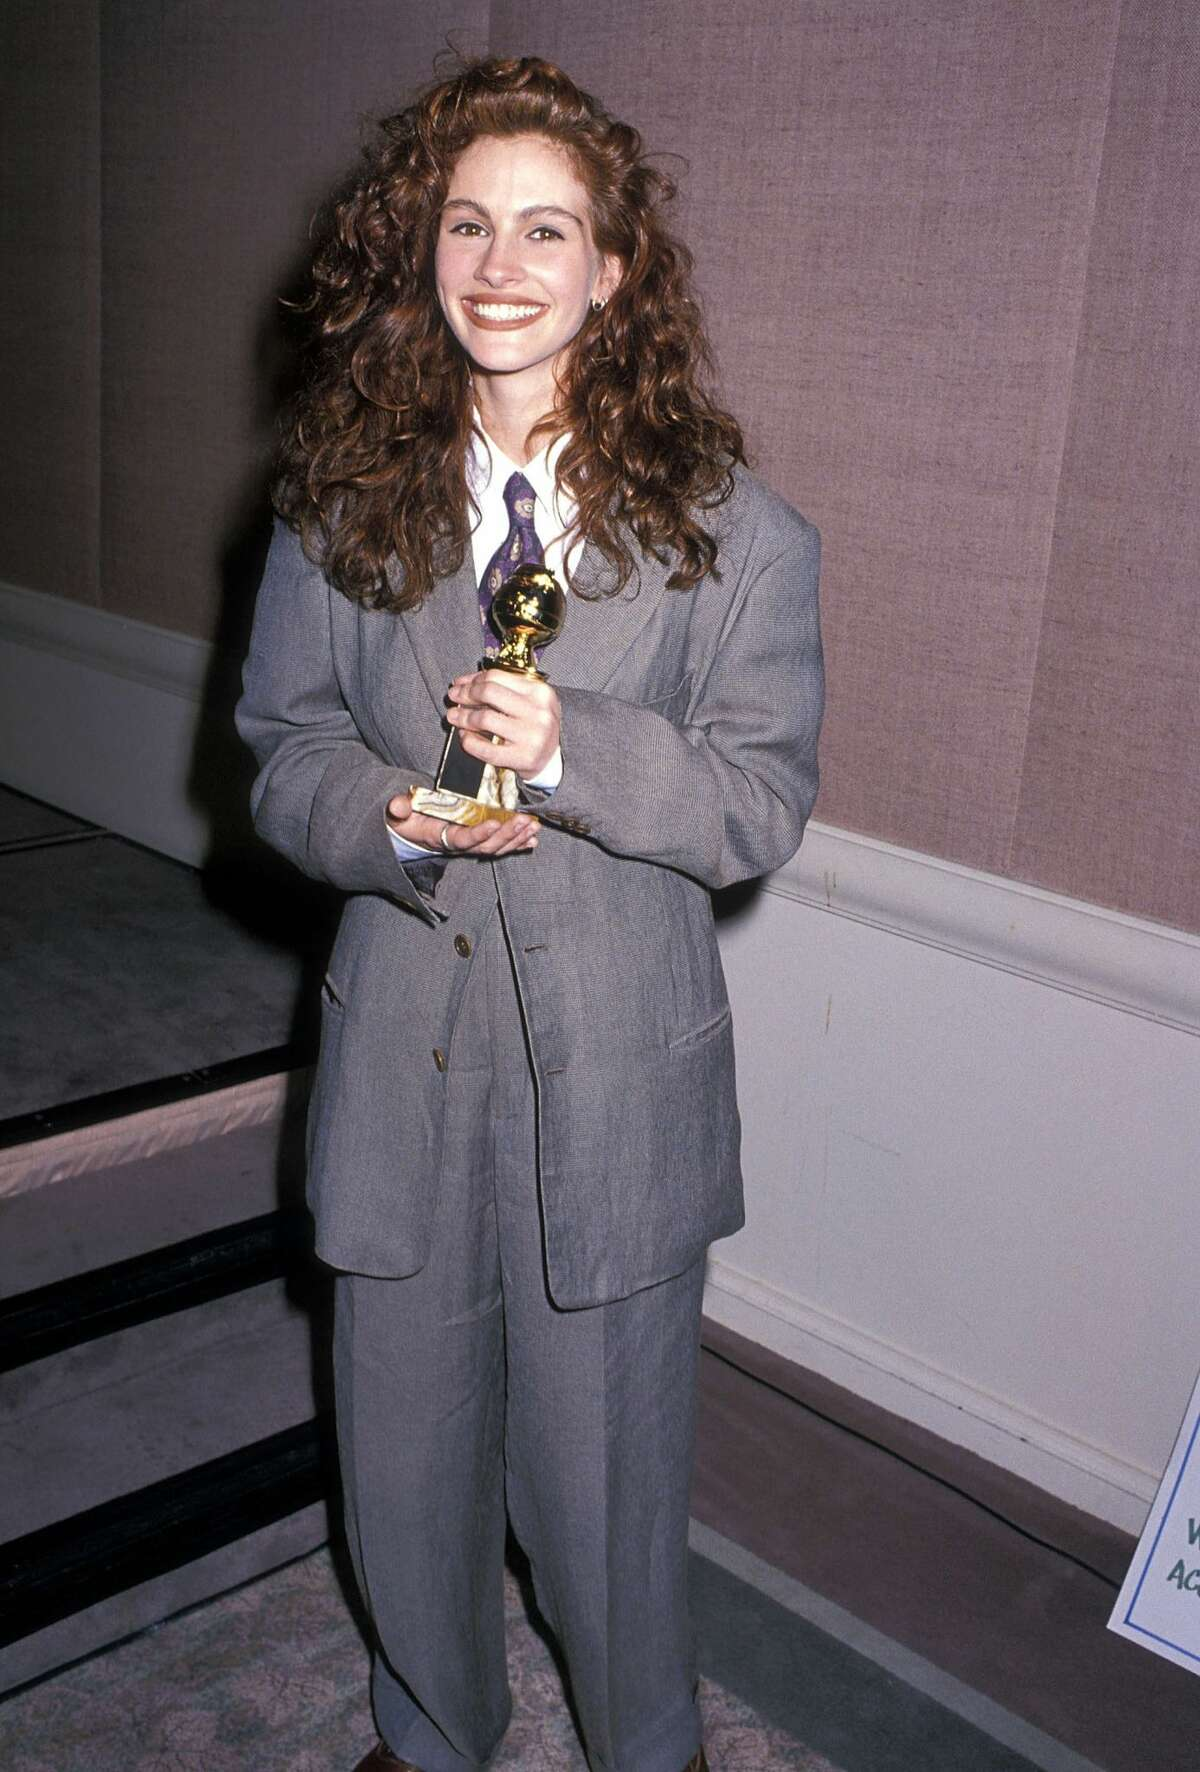 Yes, Julia Roberts once wore a men's suit to win a Globe.